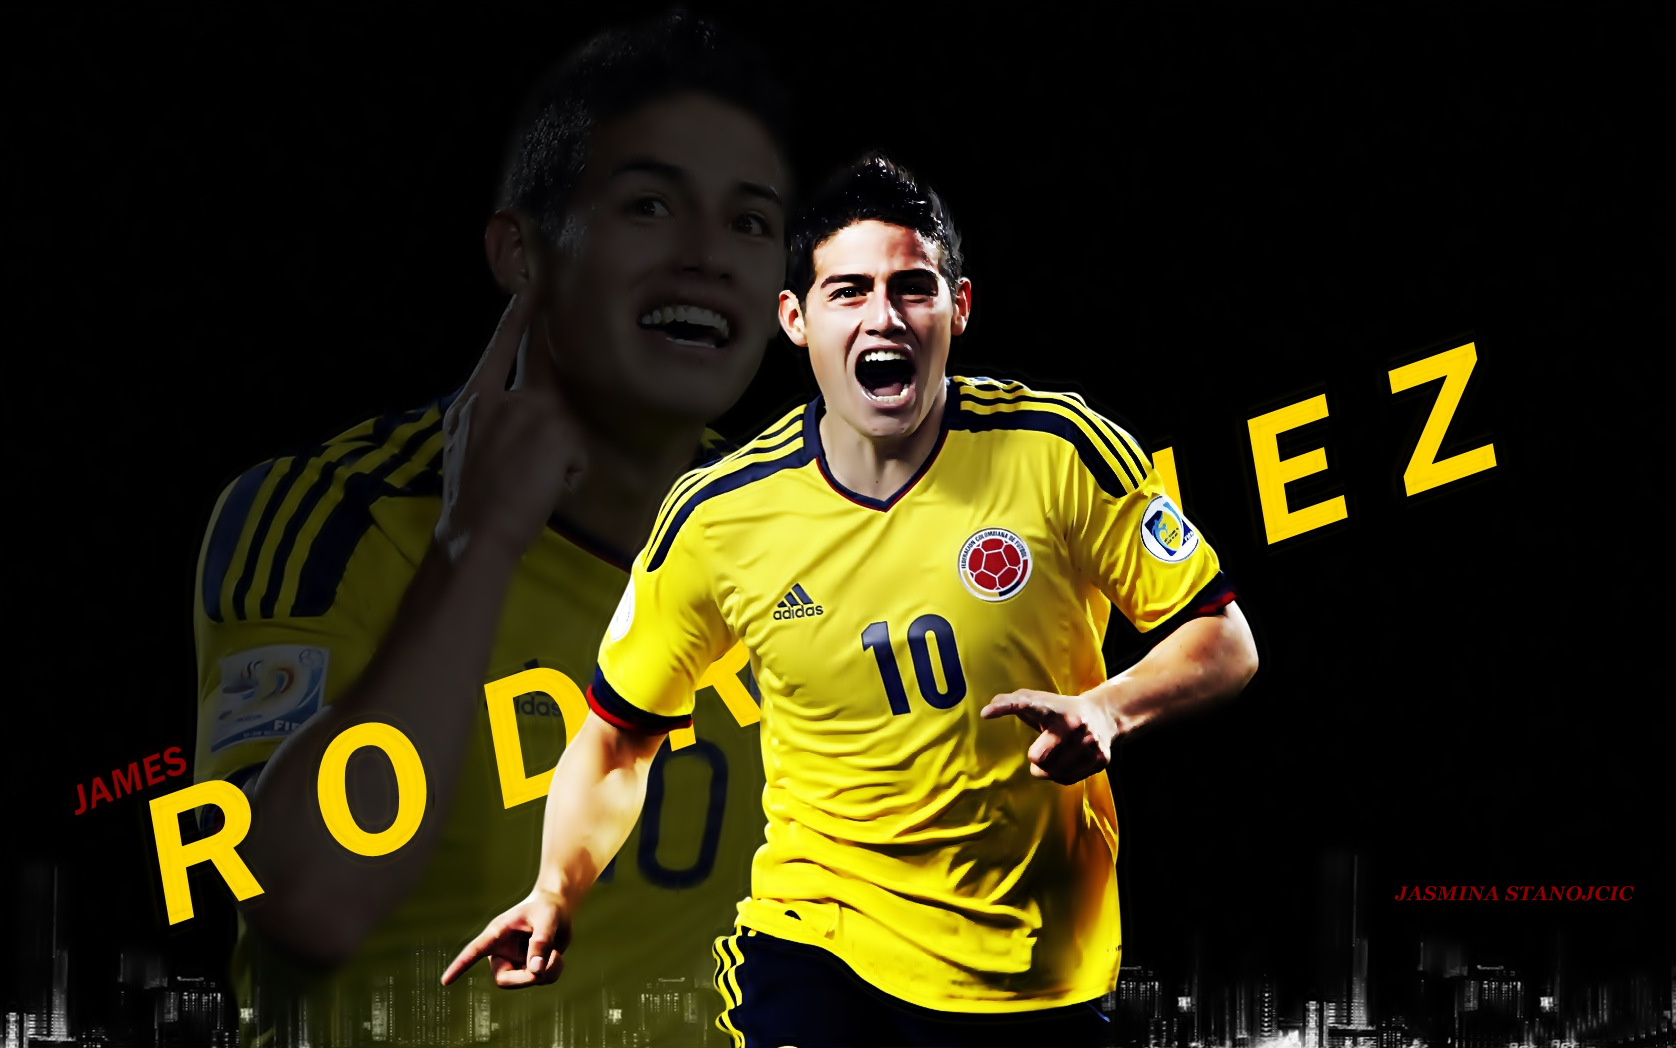 James rodriguez wallpapers high resolution and quality download - Wallpaper james ...